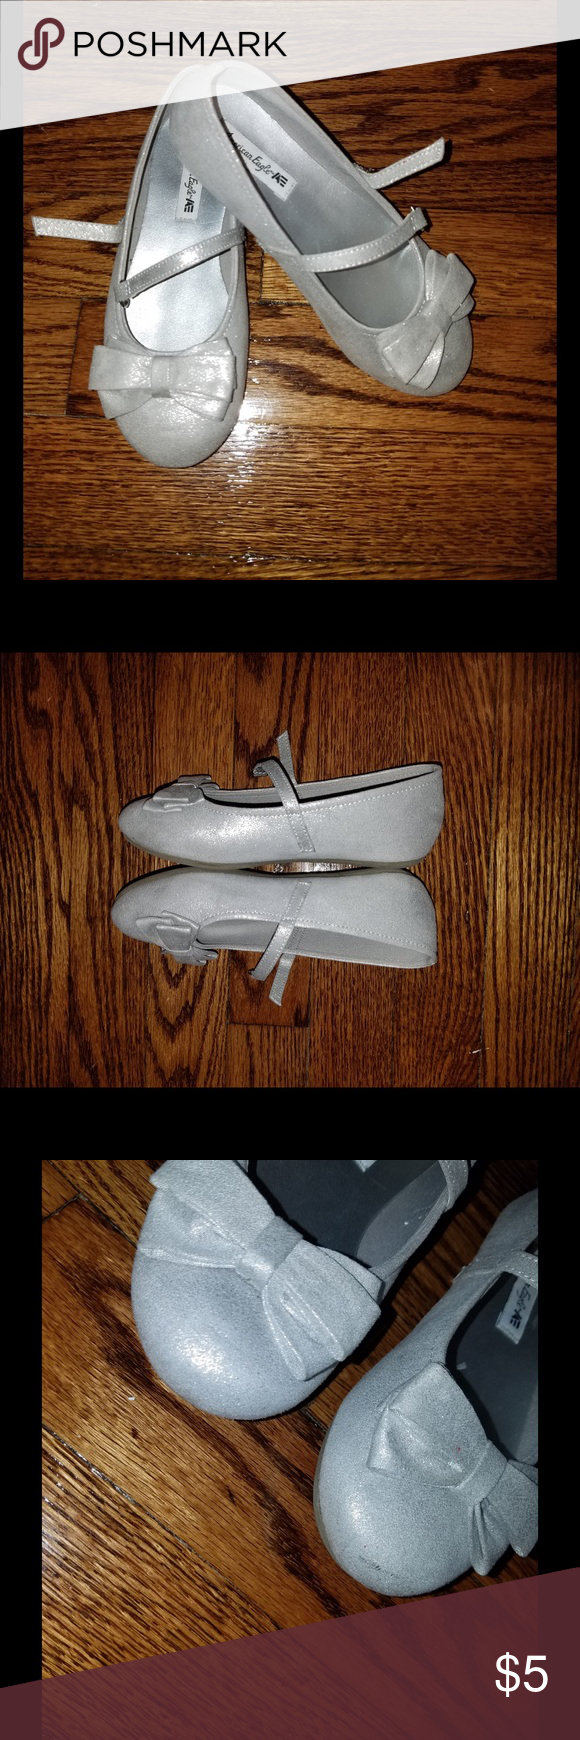 Silver Mary Janes Good condition.  Size 11.5. Rubber sole. Some marking in front, shown in pics. Other than that still good condition. ✨15% off bundles. Use bundle feature✨ Shoes Dress Shoes